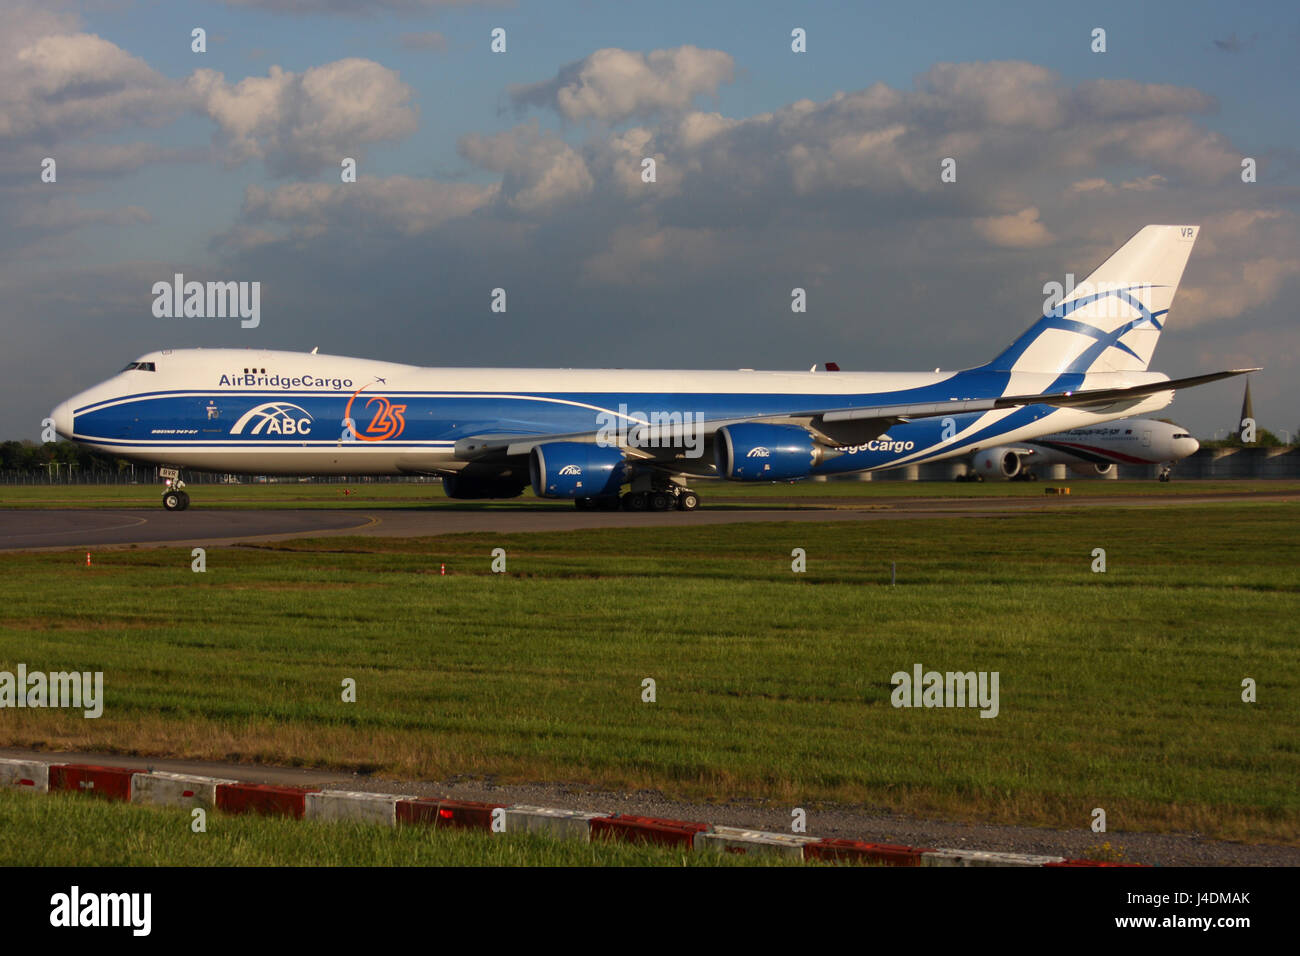 AIR BRIDGE CARGO 747 800 - Stock Image